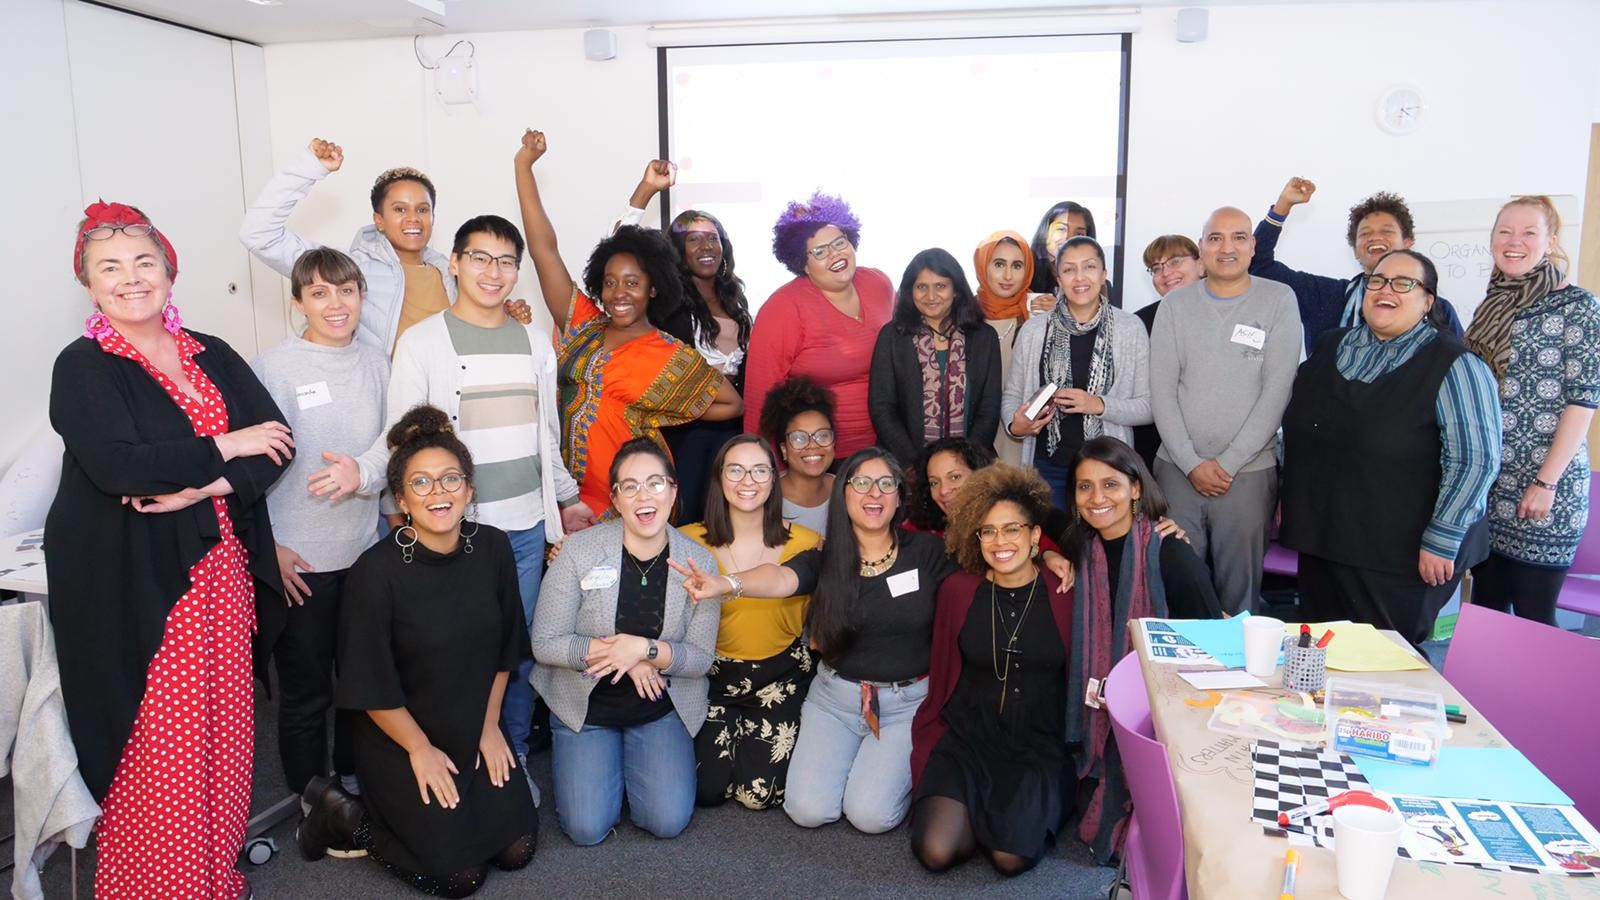 A group photo of 24 workshop attendees, mostly women of colour, all skin tones and hair colours with colourful outfits, big smiles and positive energy. An Asian woman has an orange hijab, while a black woman is wearing a dashiki. few of them are holding up their right fists or a peace sign.